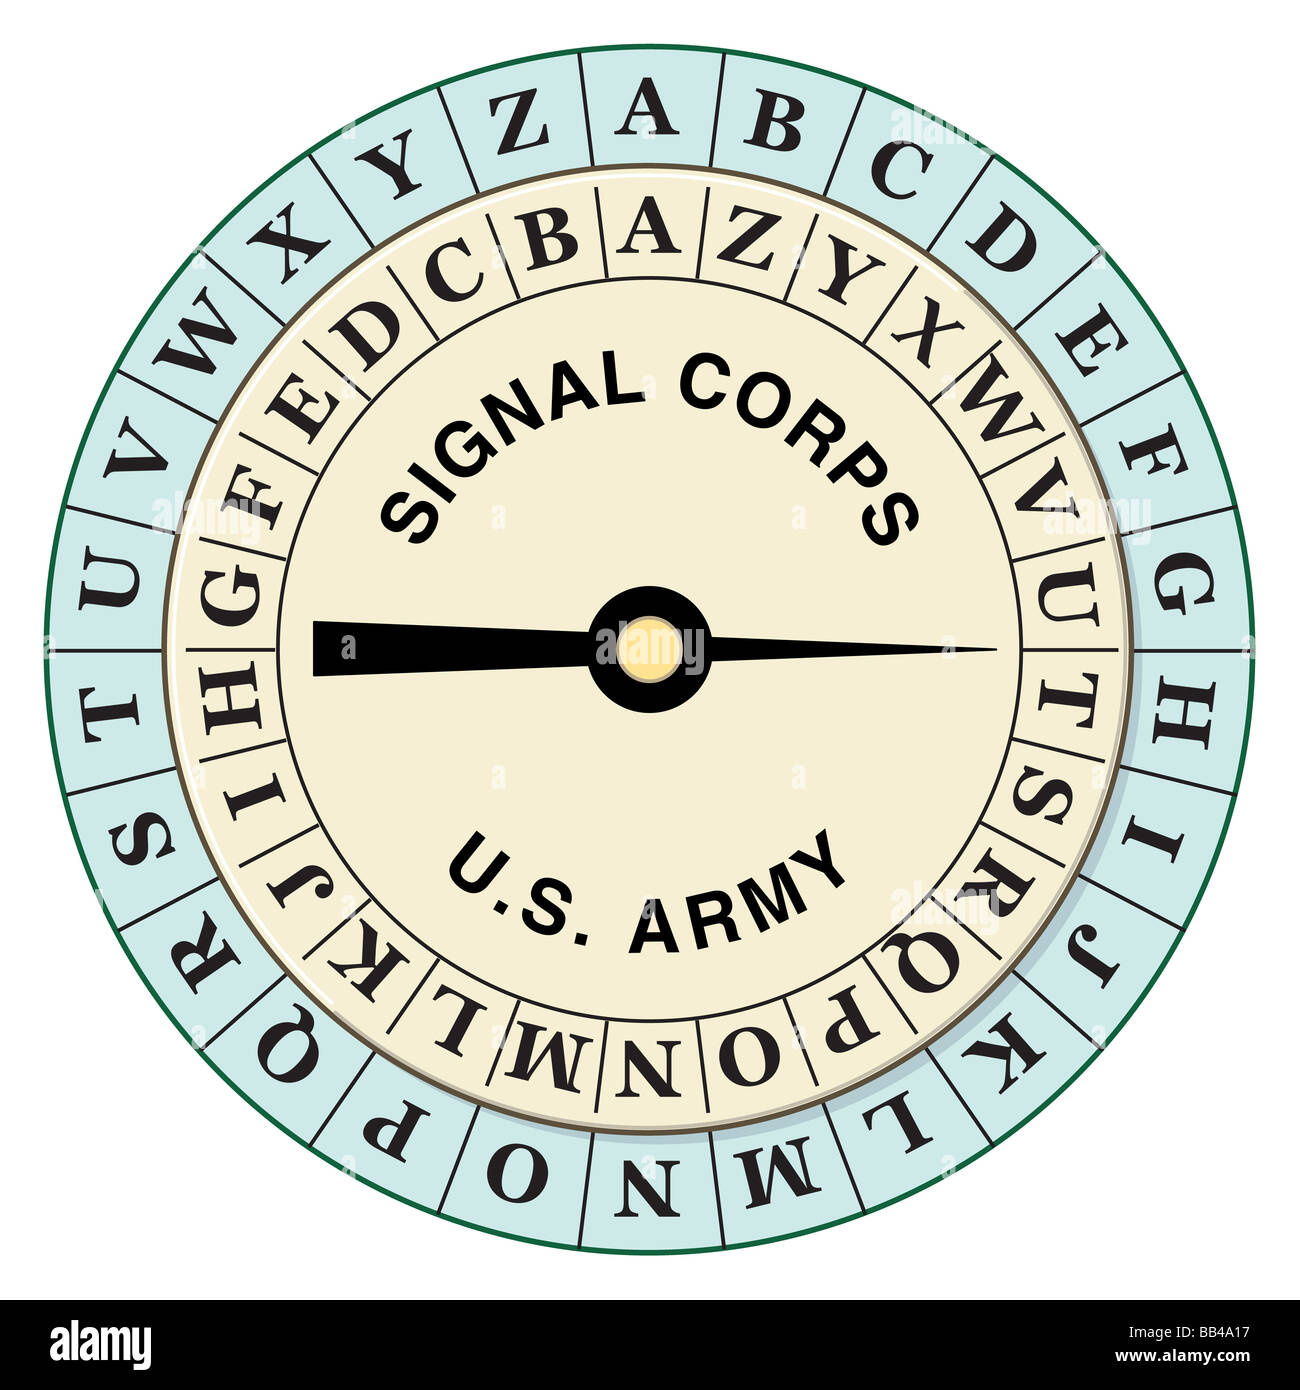 During WWI, the U.S. Army Signal Corps rotated the inner ring of this cipher disk to encrypt messages in the field Stock Photo